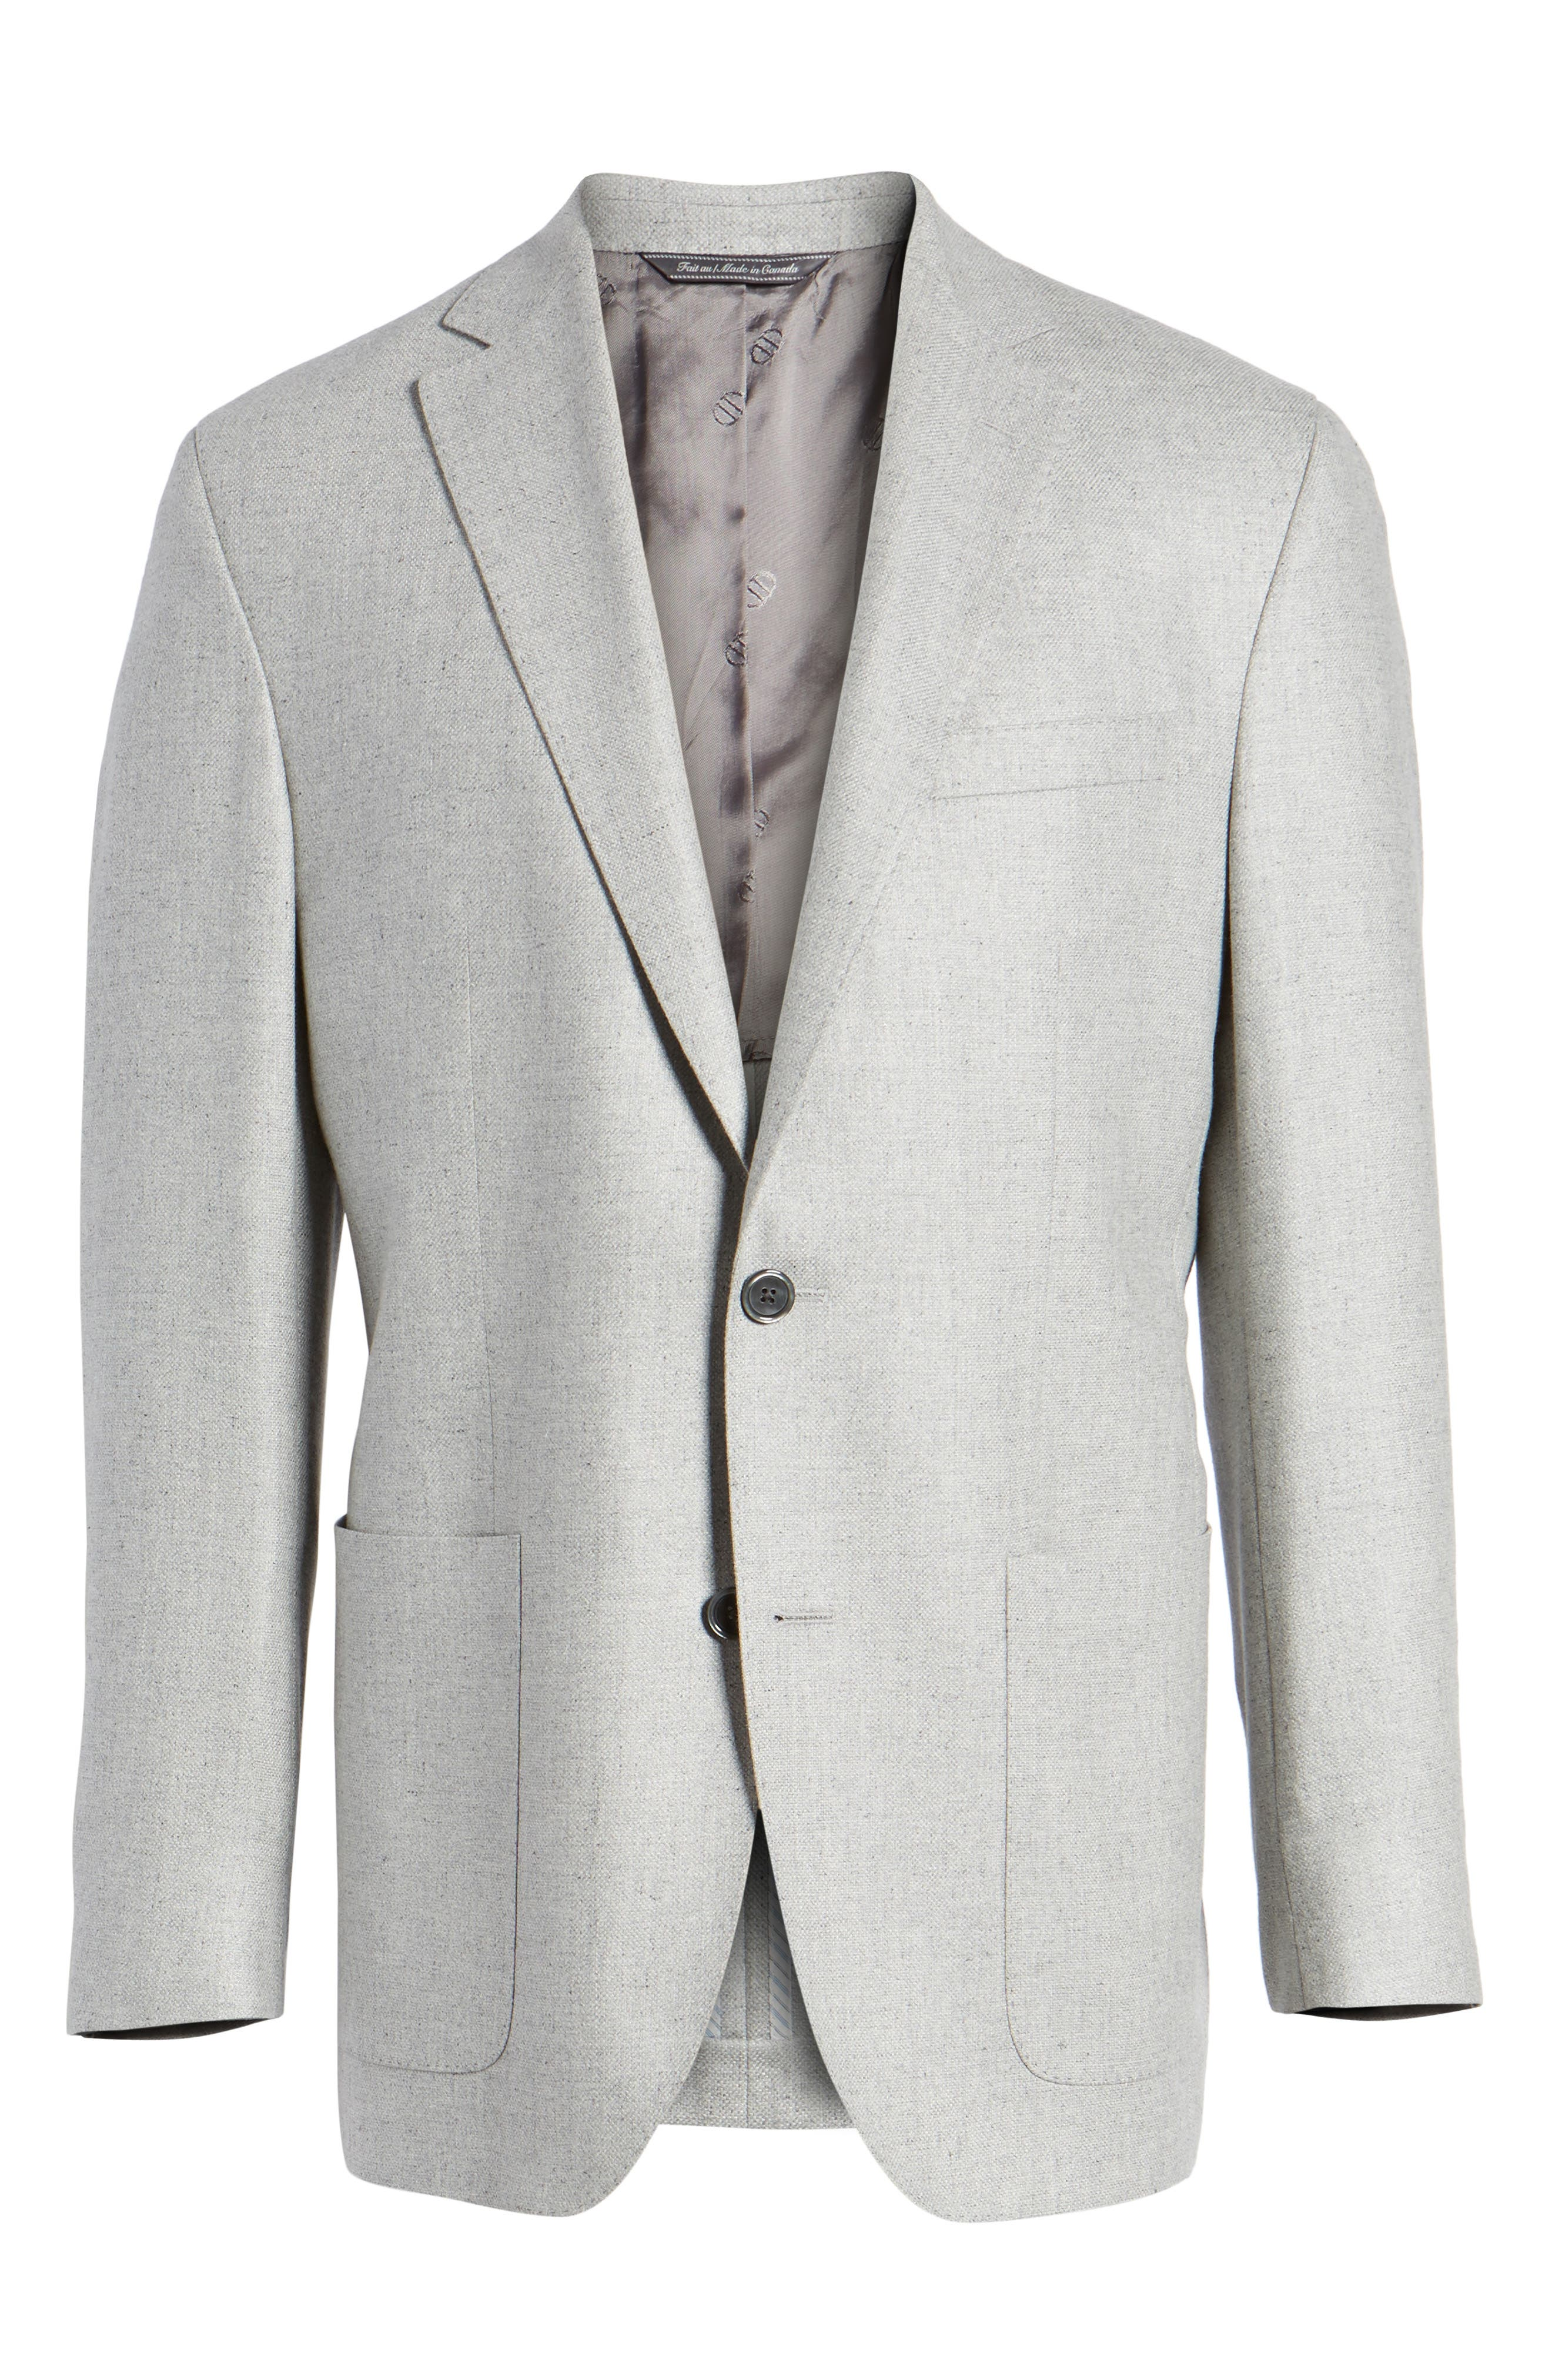 Arnold Classic Fit Wool & Silk Blazer,                             Alternate thumbnail 6, color,                             Light Grey